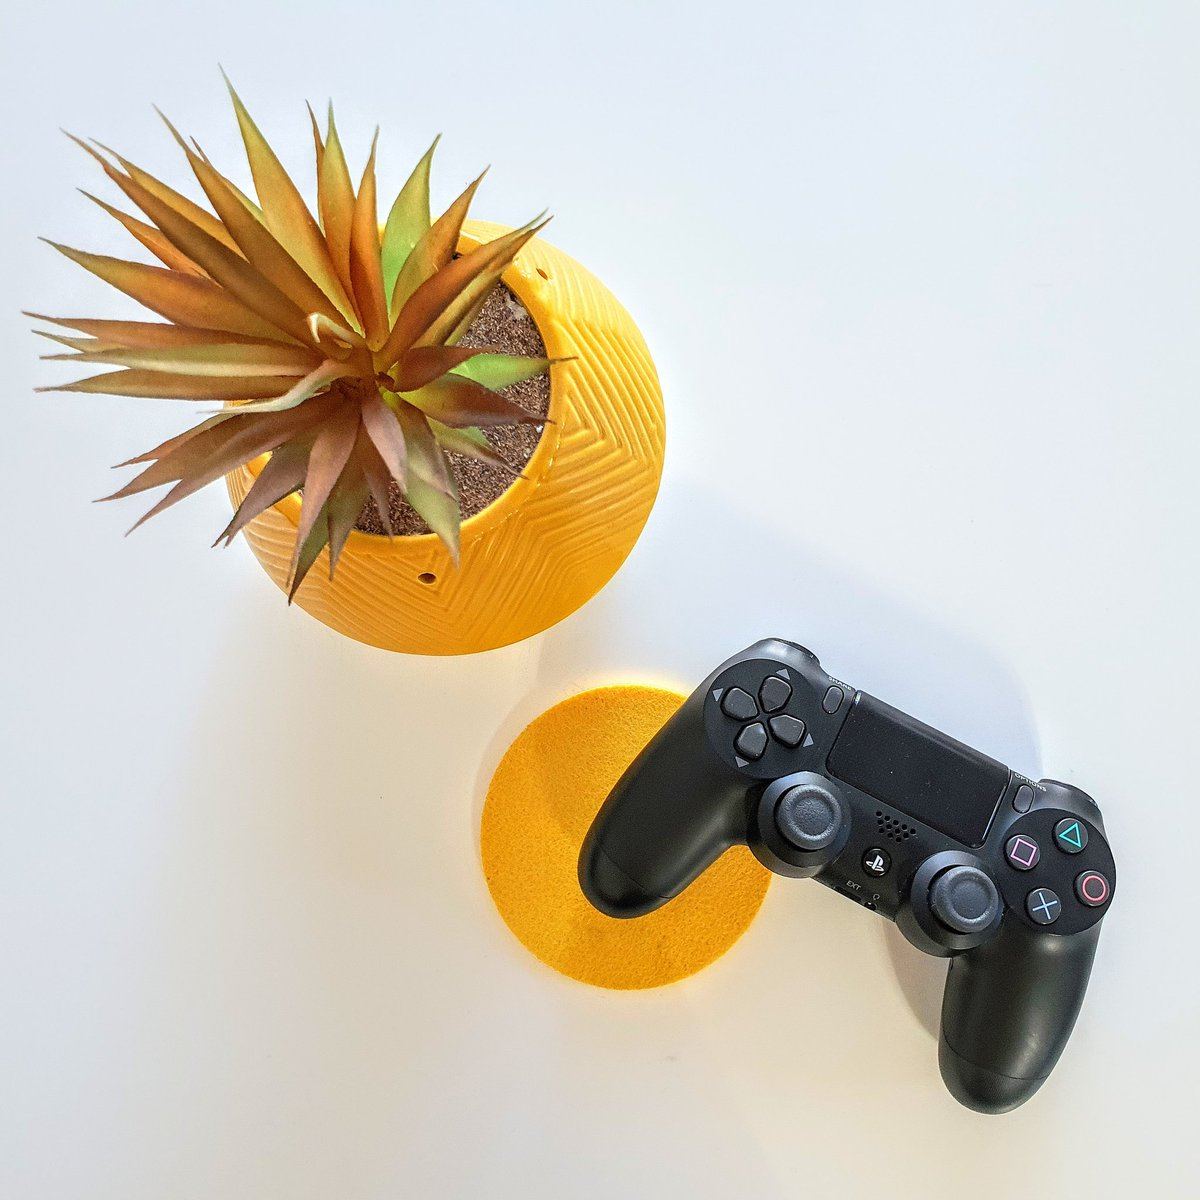 What are your favourite #Playstation games?   Creative Coconut Games YouTube Channel 🌴🥥   #PlayStation #game #games #yellow #white #control #controller #bristol #couplegoals #favourite #husbandandwife #sunday #lazysunday #gameday #picture #picoftheday